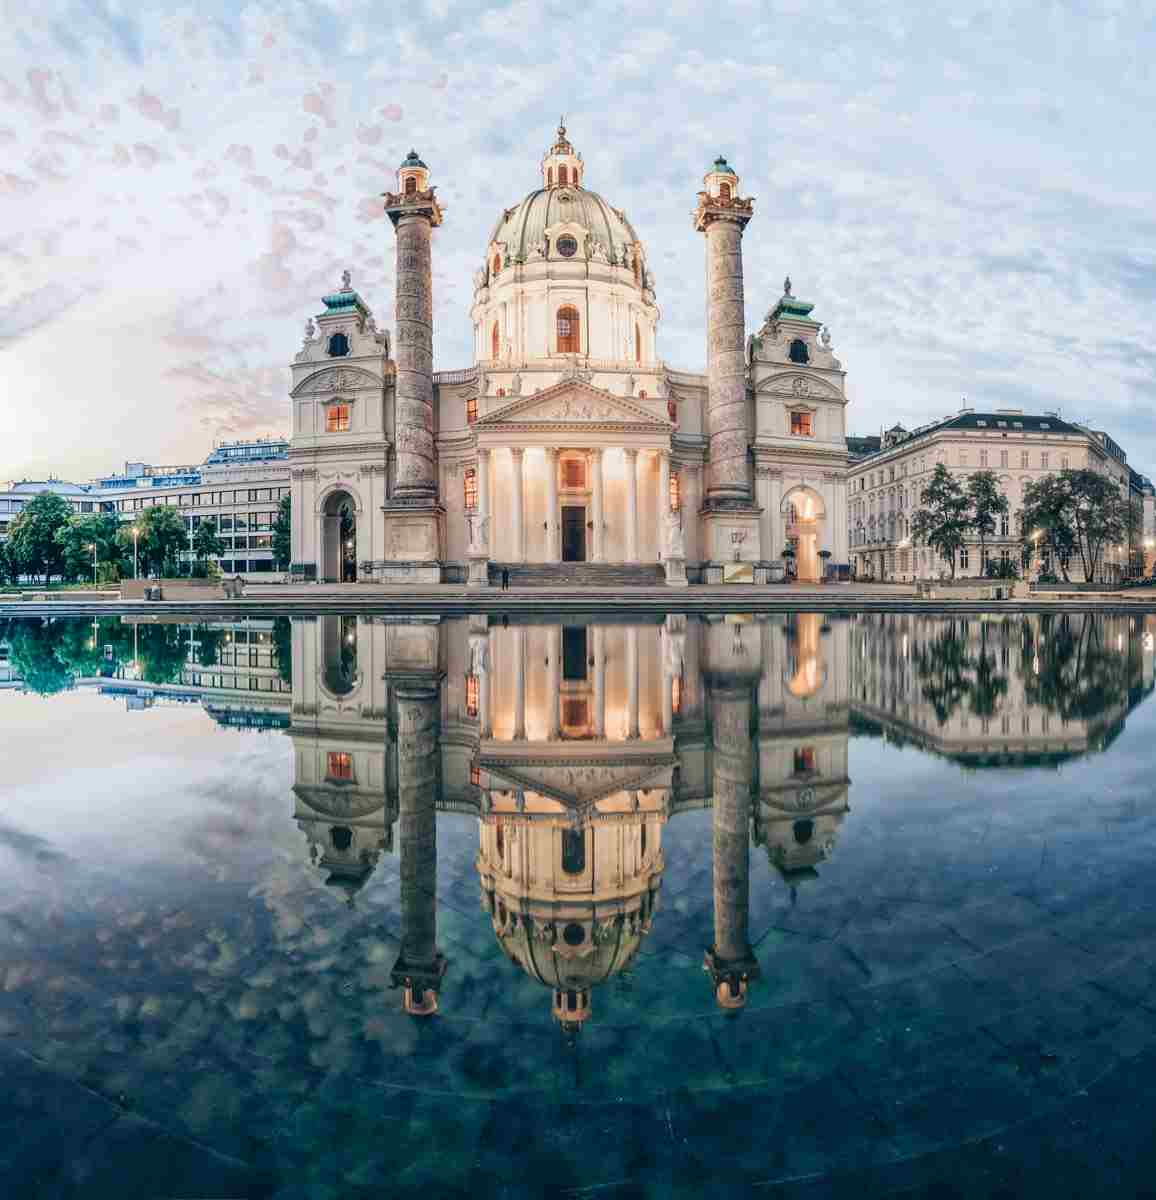 Mirror-image reflection of the beautiful Karlskirche in Vienna